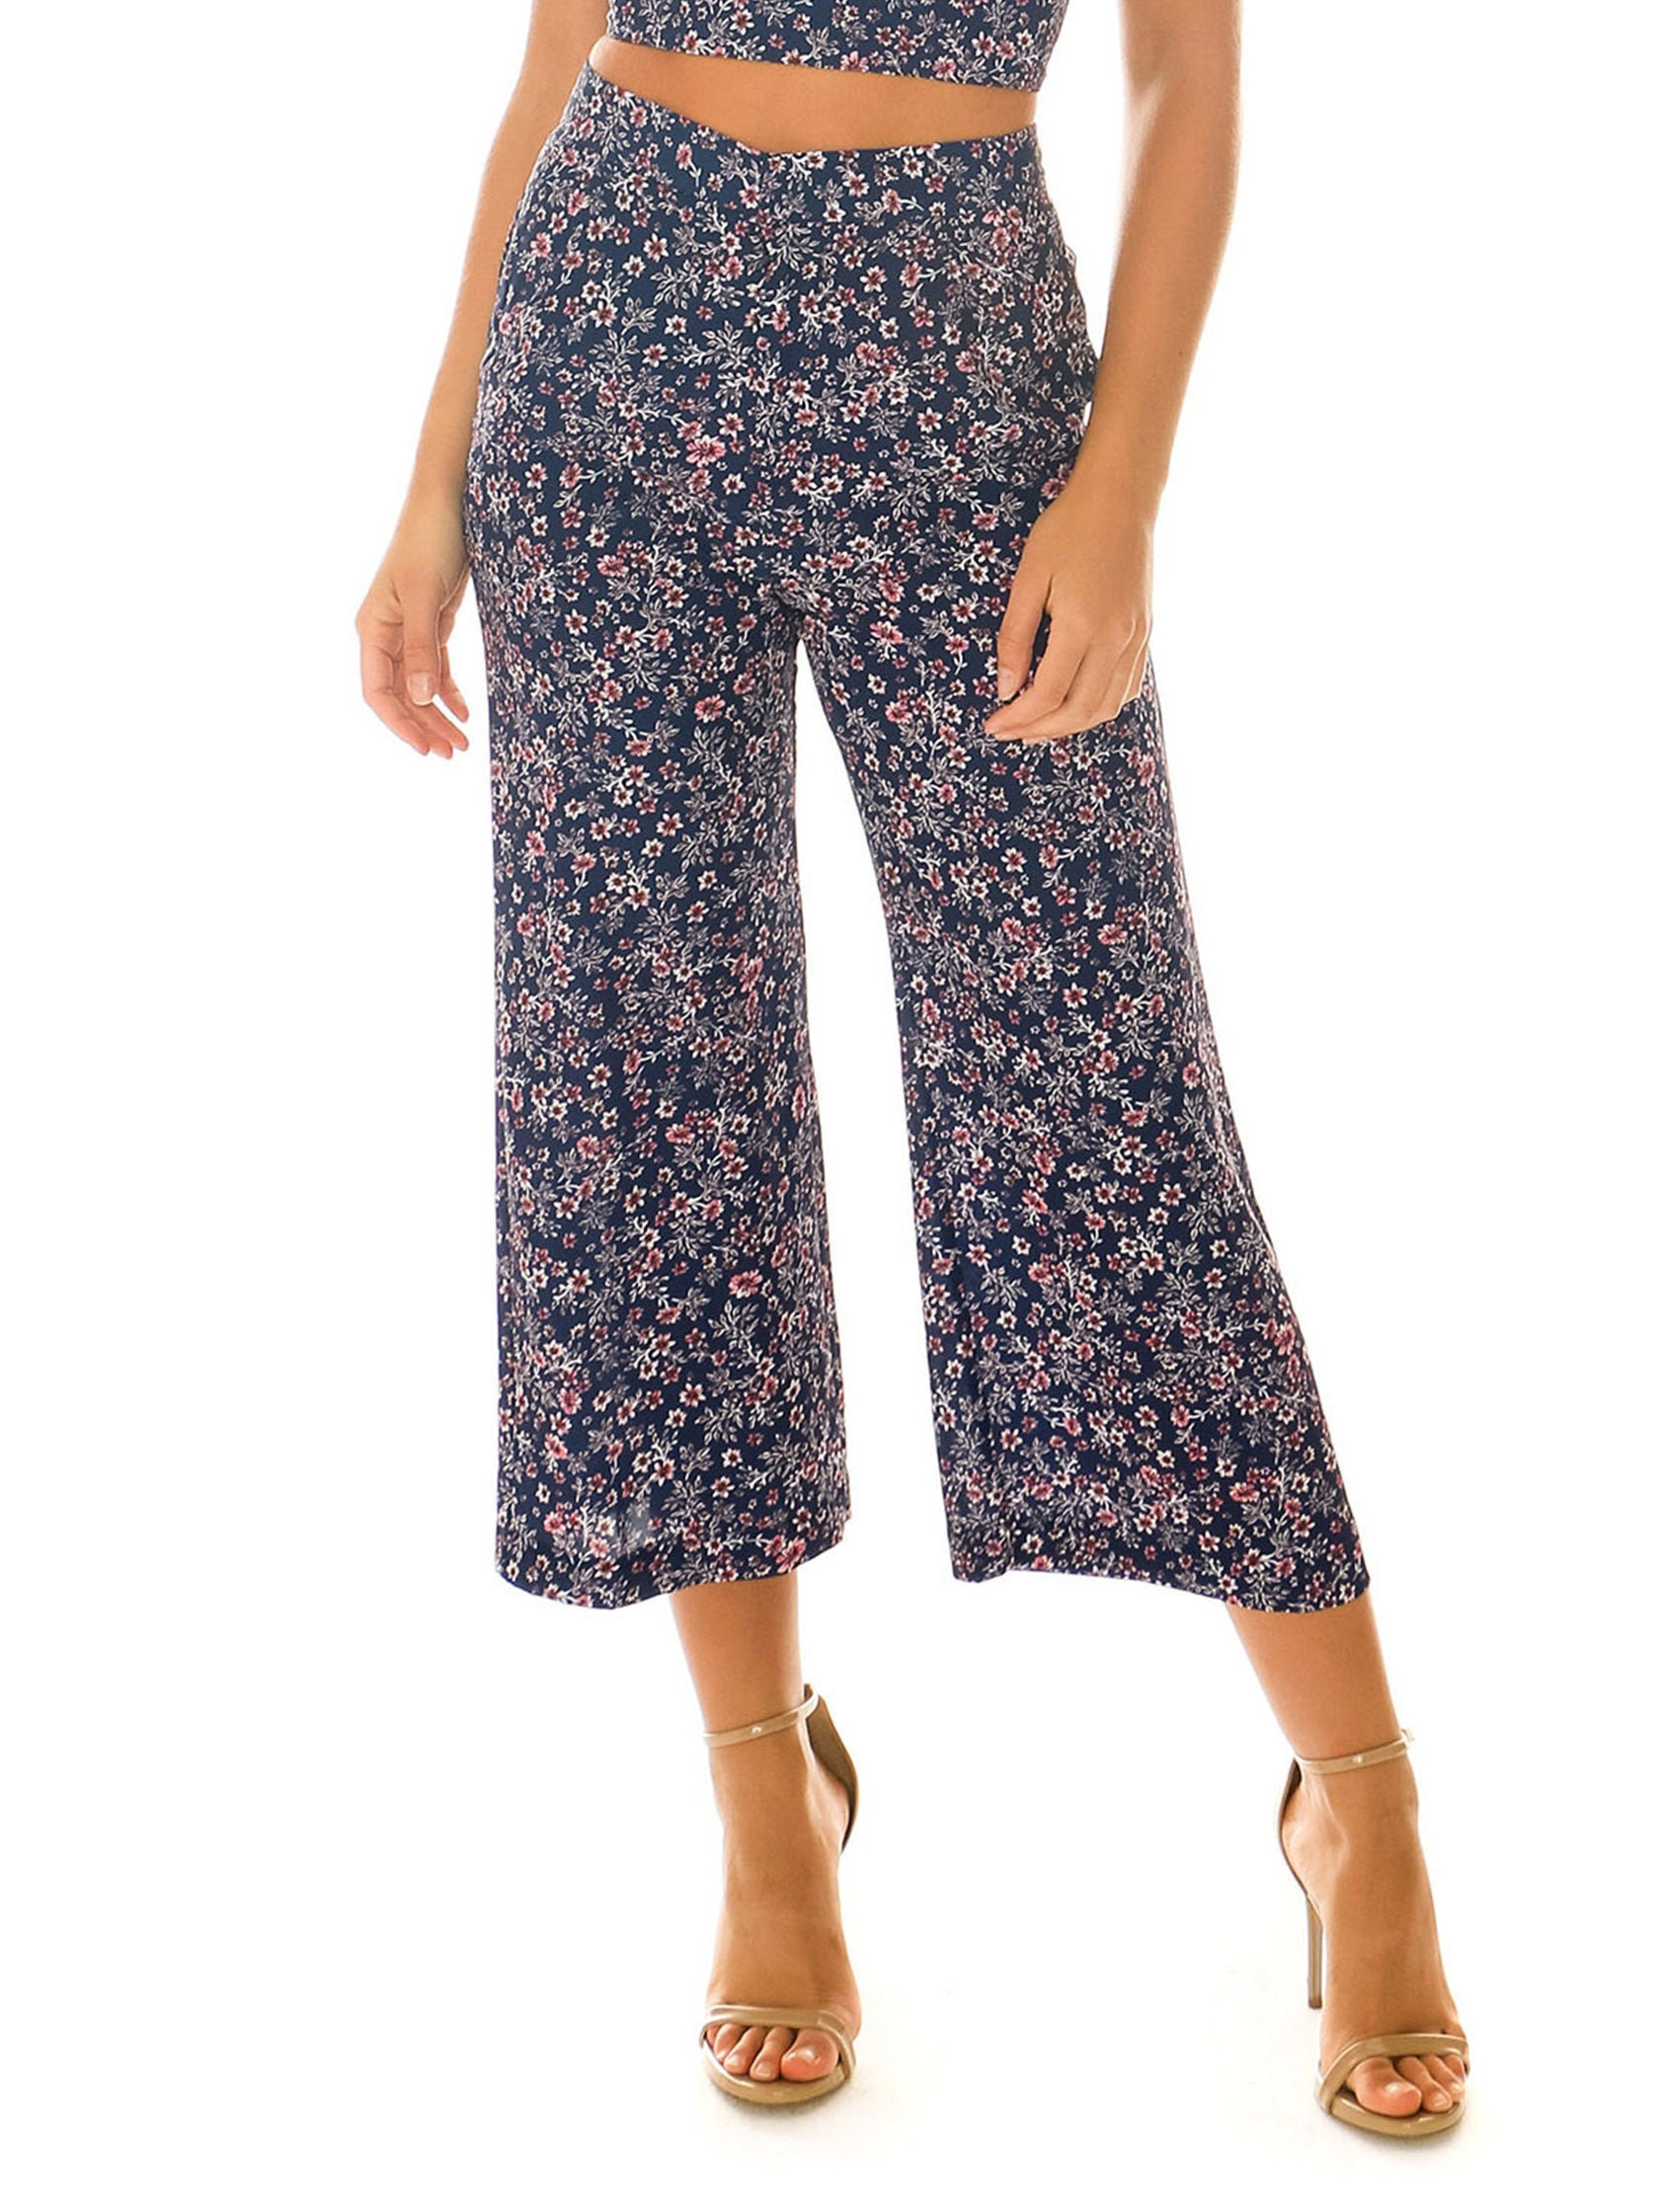 Woman wearing a pants rental from Blue Life called Camilla Pant